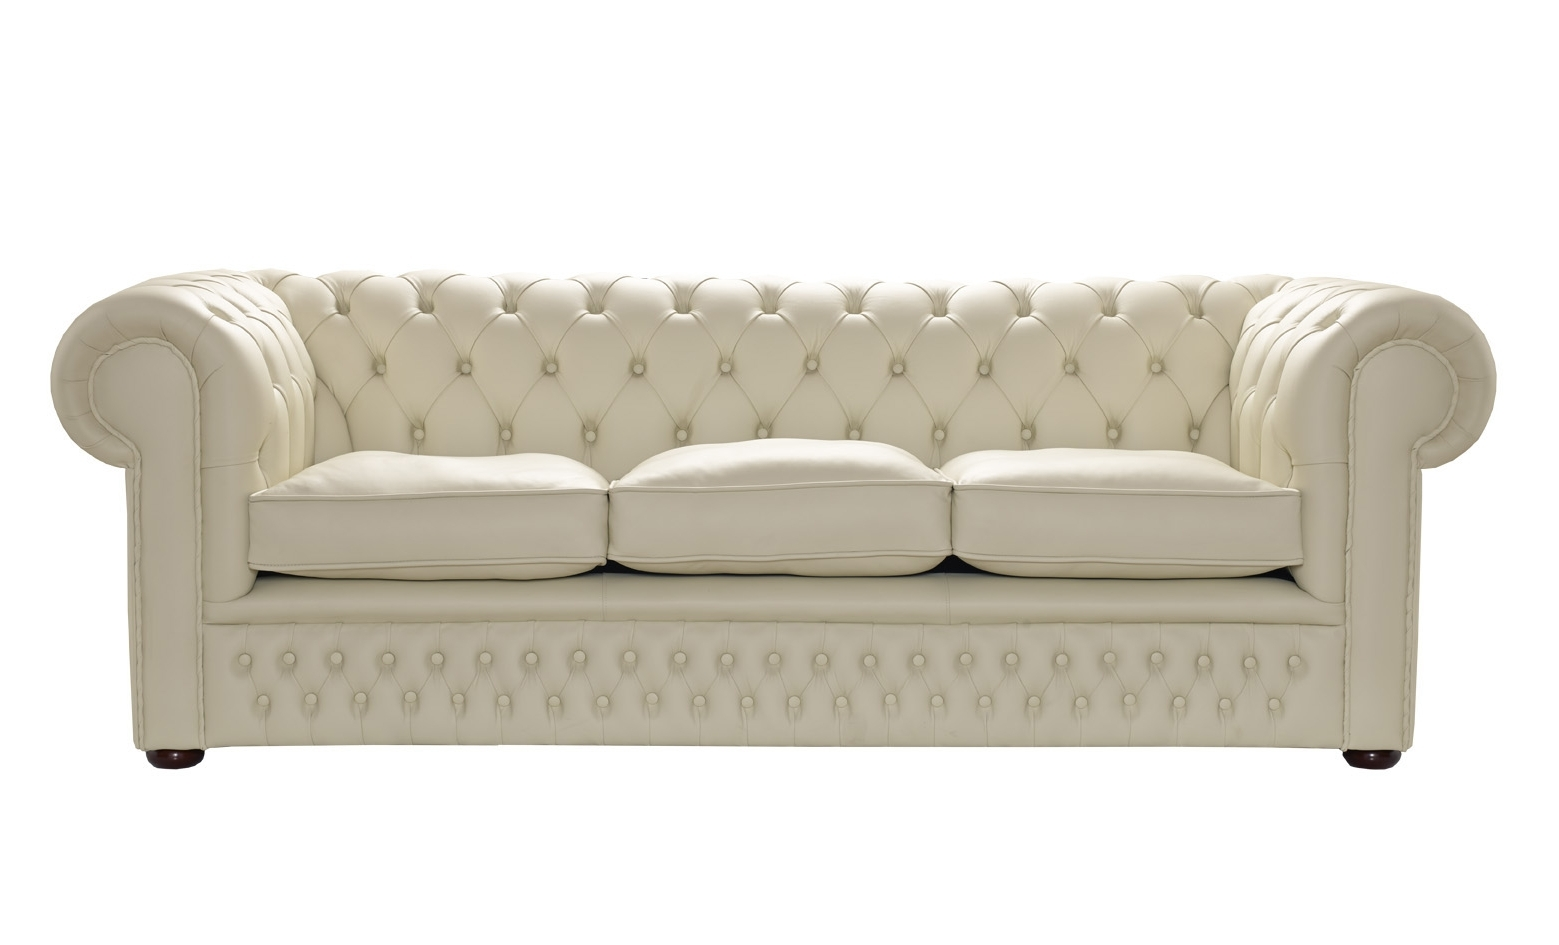 Great Cream Colored Sofa 84 With Additional Sofa Room Ideas With Regarding Most Recently Released Cream Colored Sofas (Gallery 13 of 20)